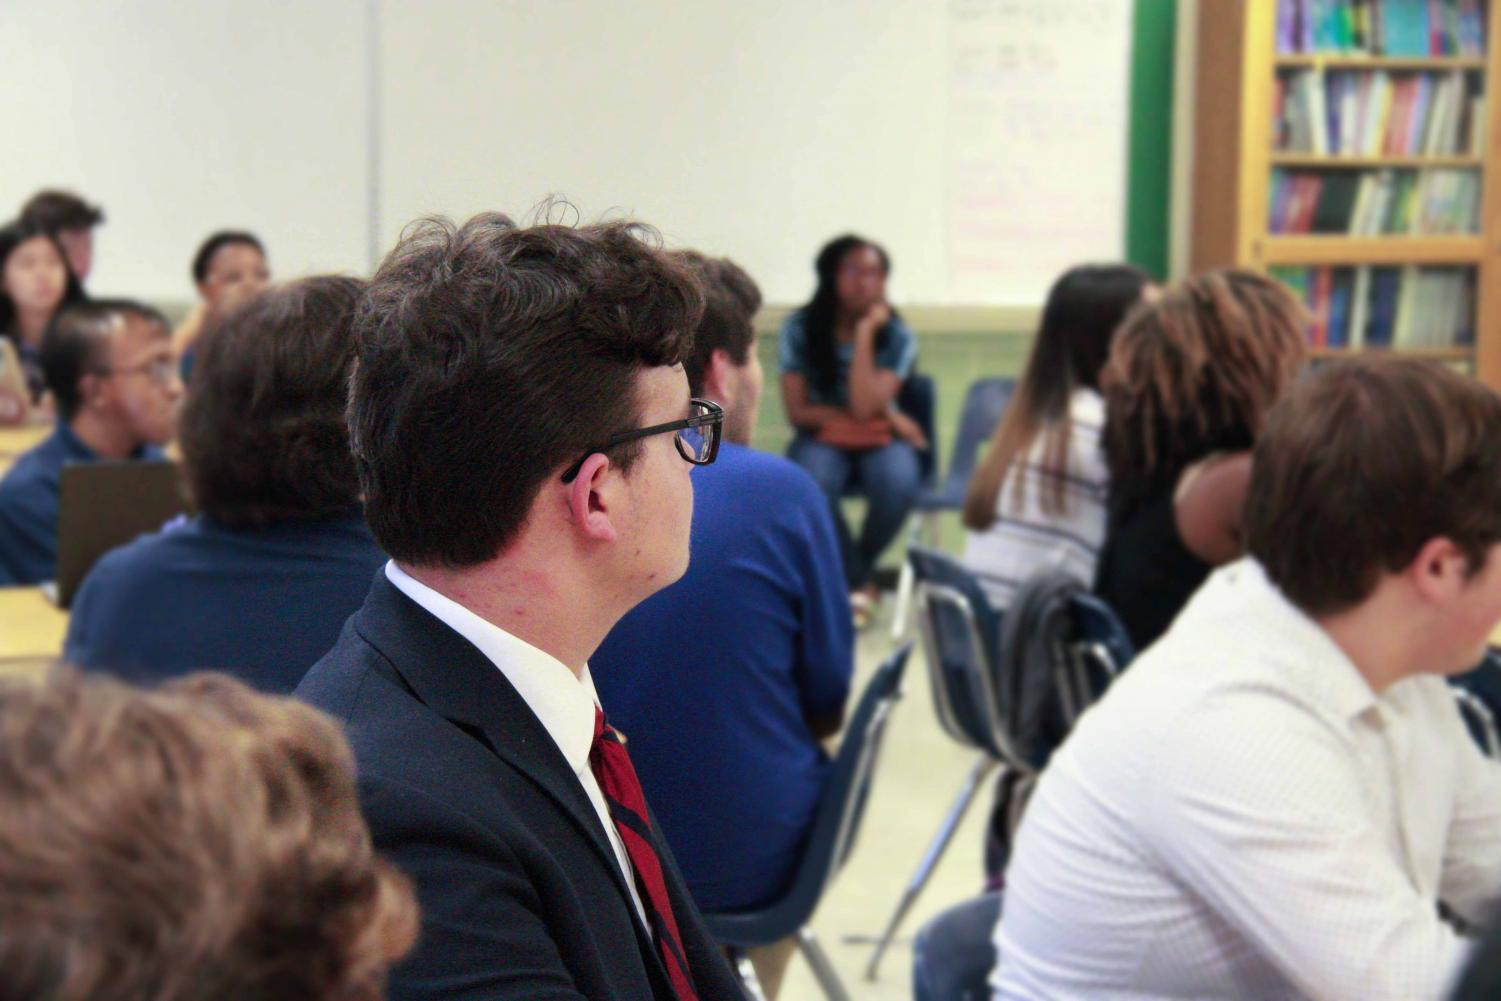 Connor Chitmon, along with the rest of the Senate, listens attentively to President Lori Feng speak.